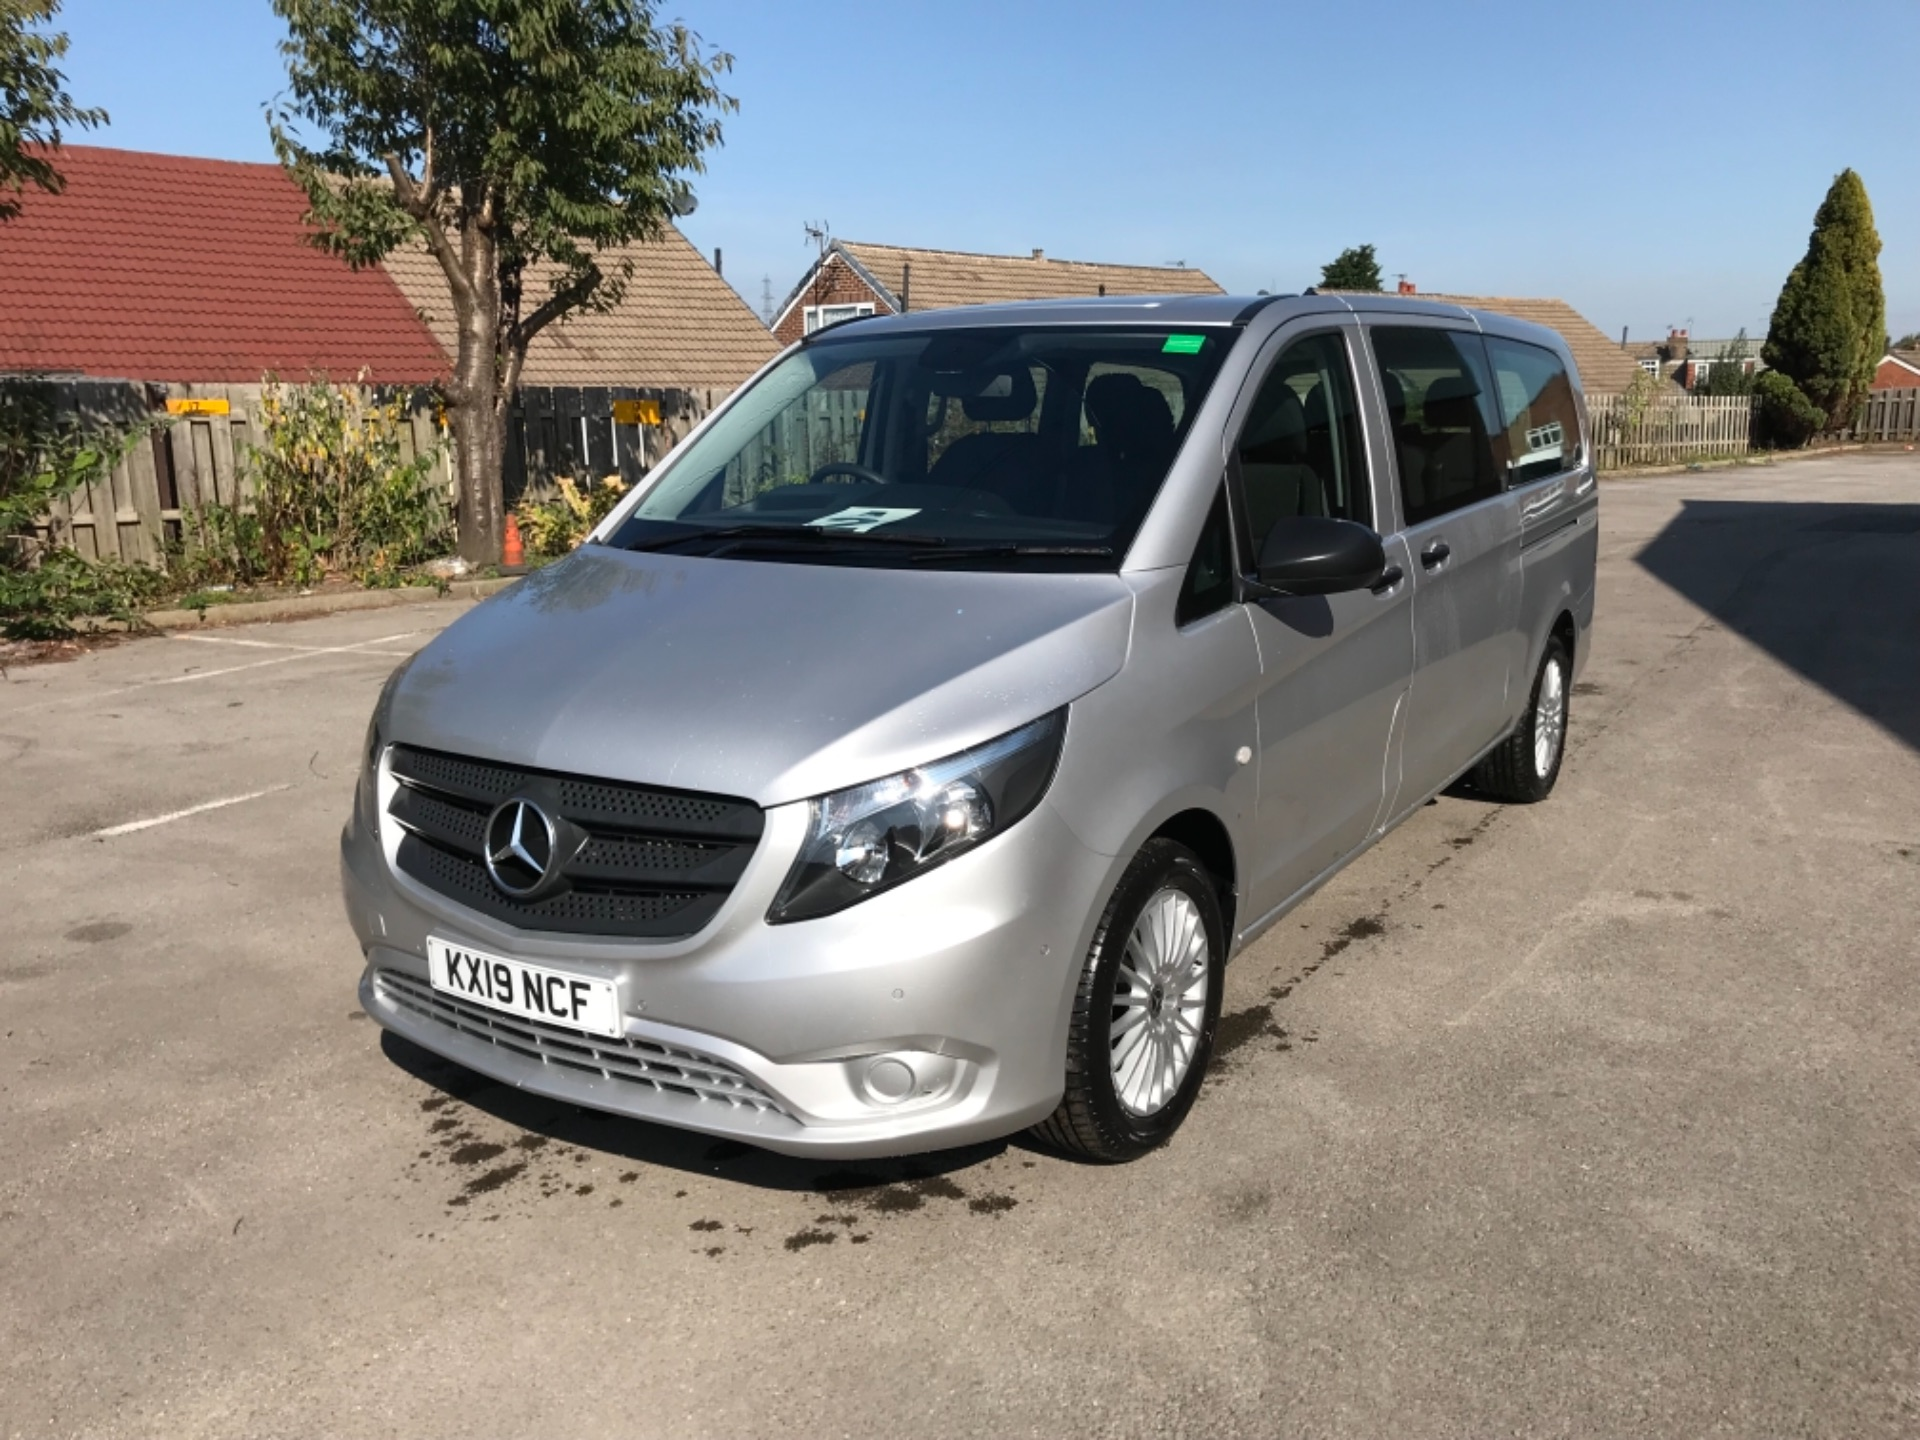 2019 Mercedes-Benz Vito 119 Cdi Select 8-Seater 7G-Tronic (KX19NCF) Image 3